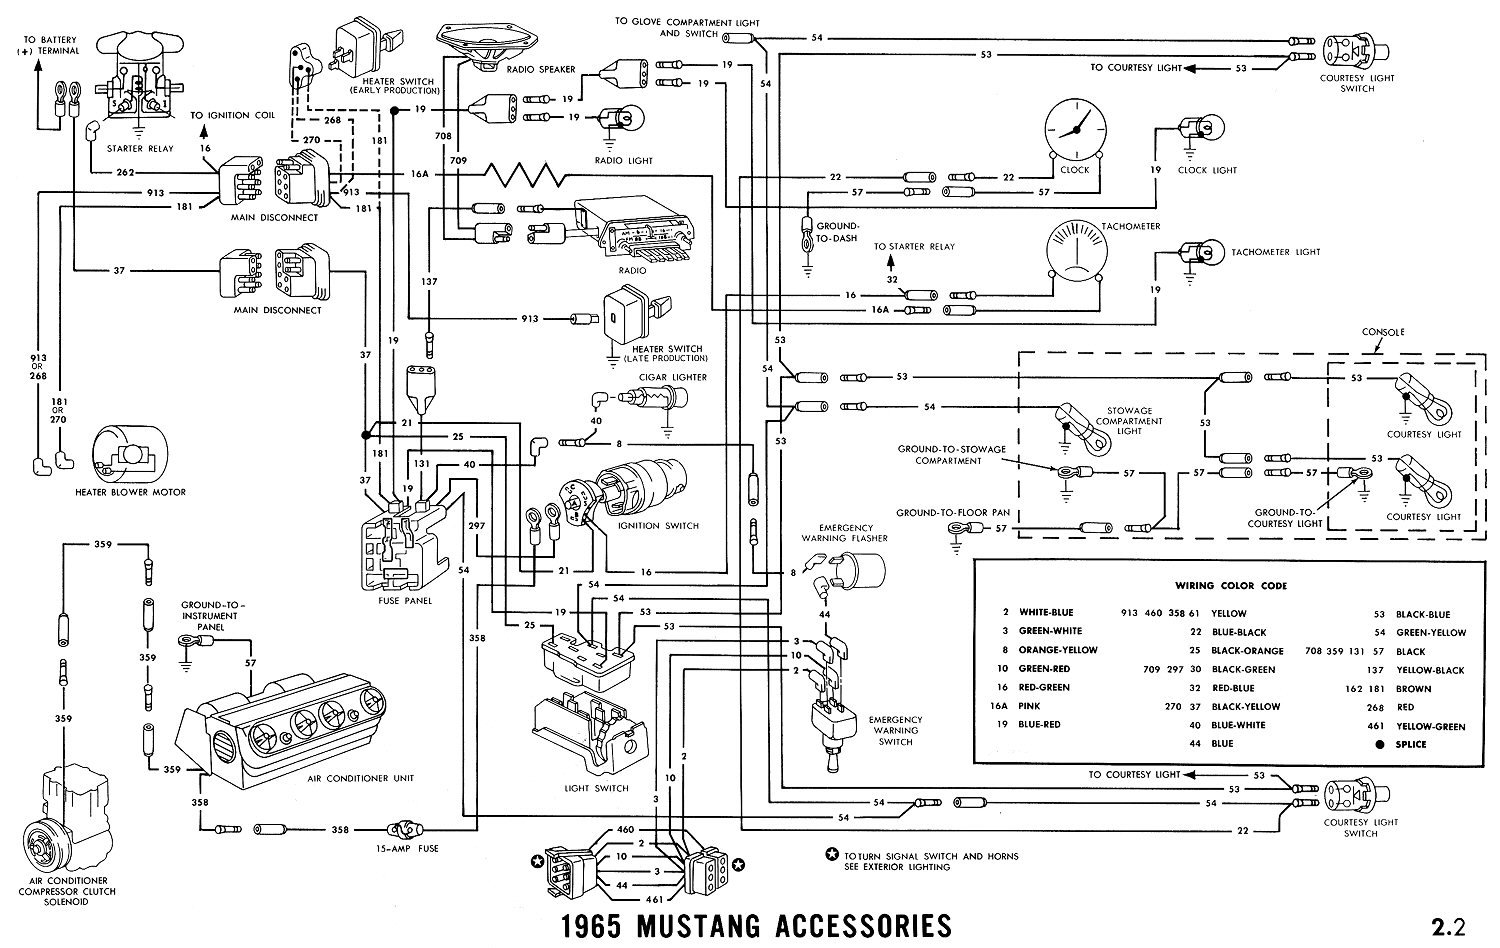 1965 mustang radio wiring/connections? | ford mustang forum  ford mustang forum